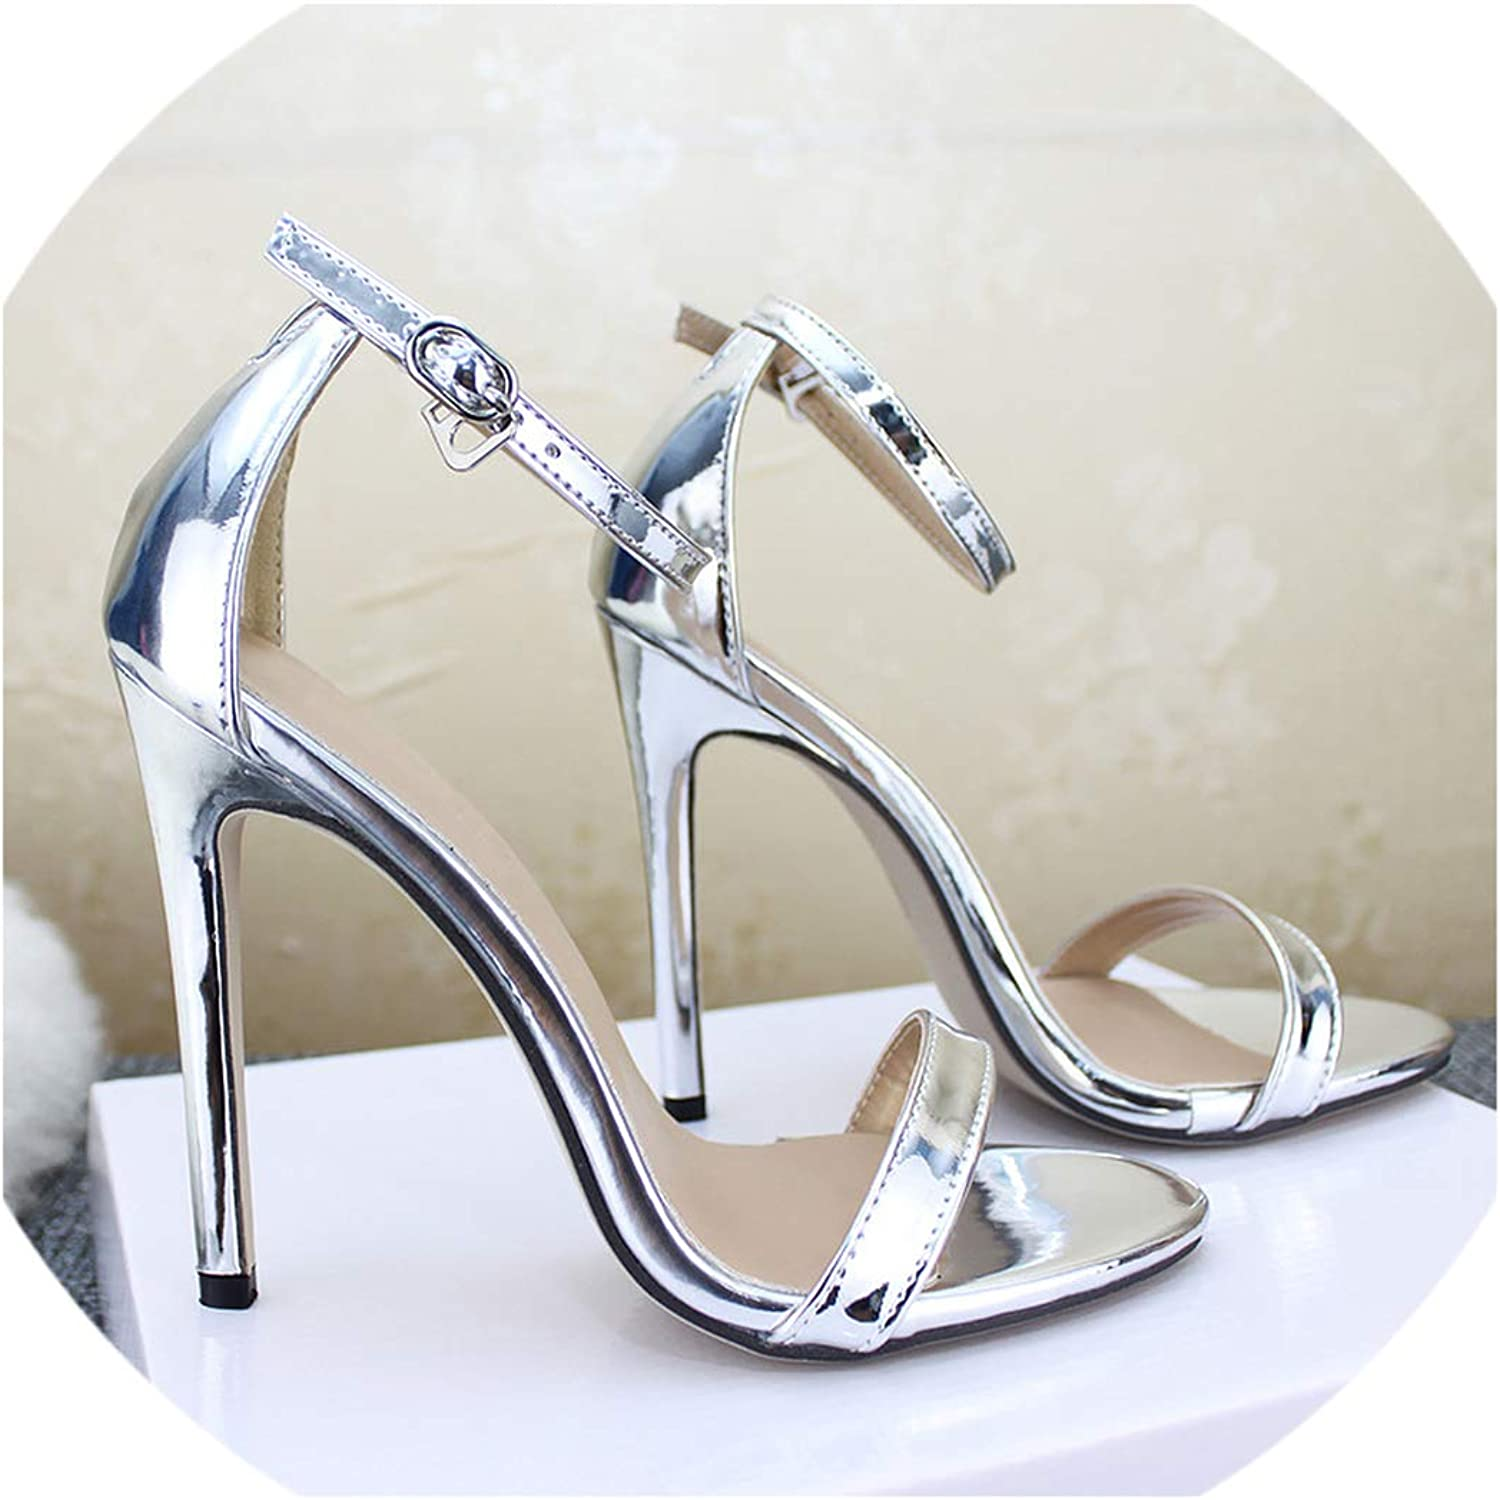 Women's shoes Sandals with Buckle High Heels gold and Silver Wedding shoes